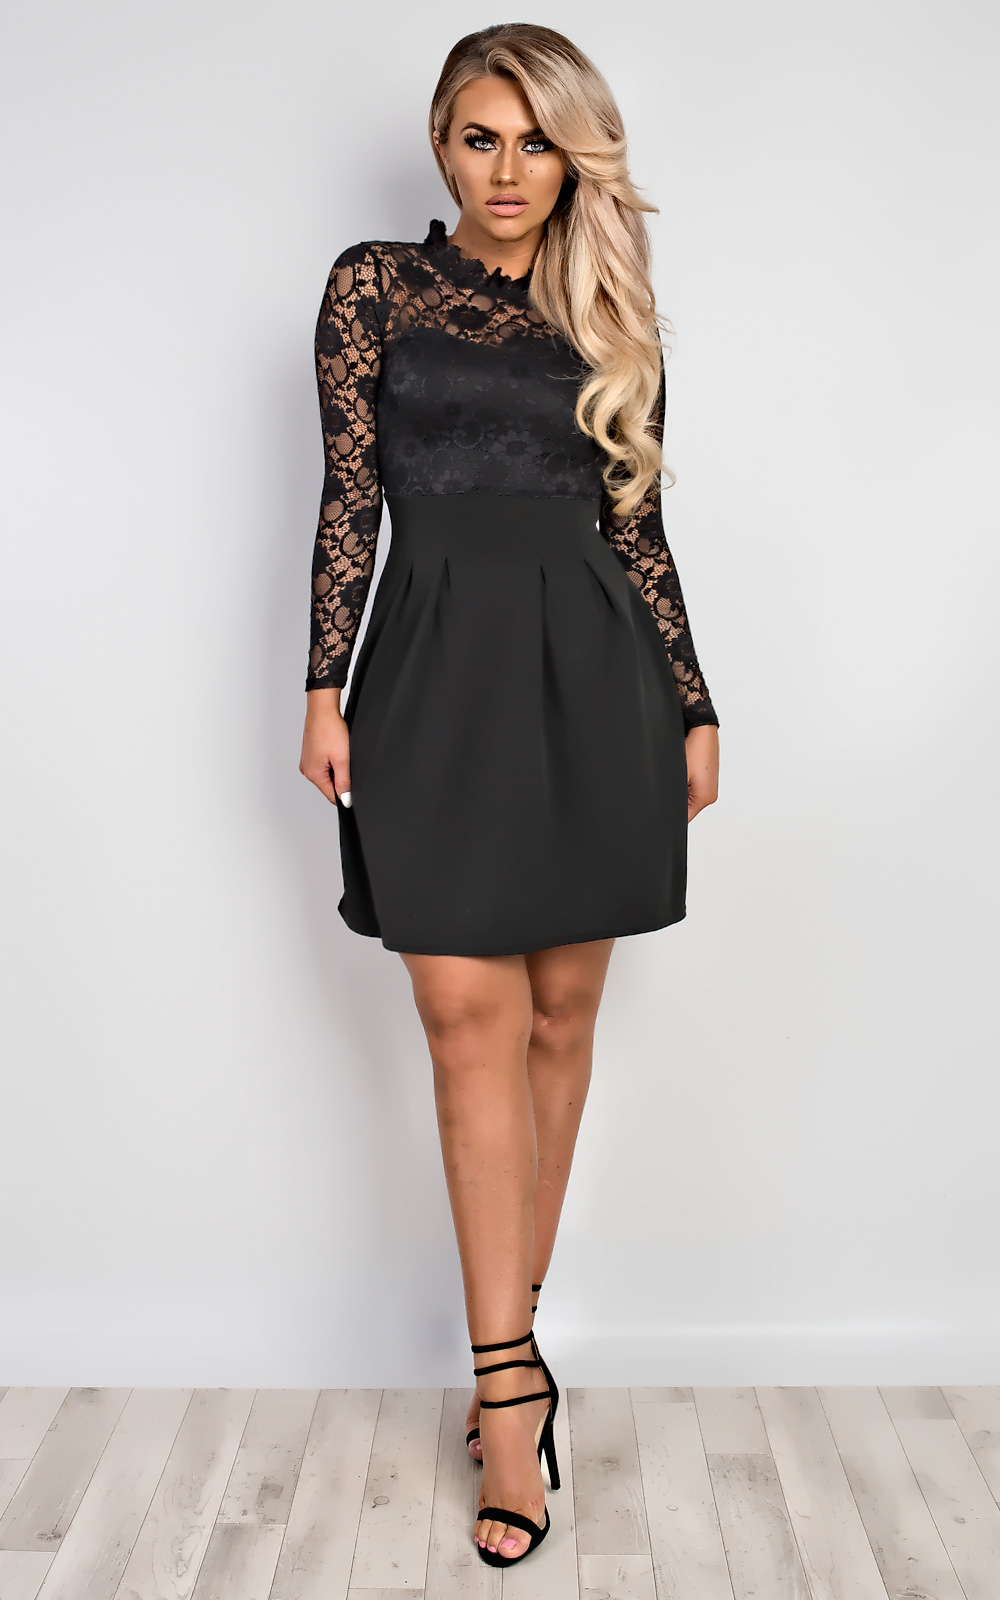 Women-039-s-Ladies-Stunning-Lace-Floral-Celeb-Inspired-Party-Skater-Dress